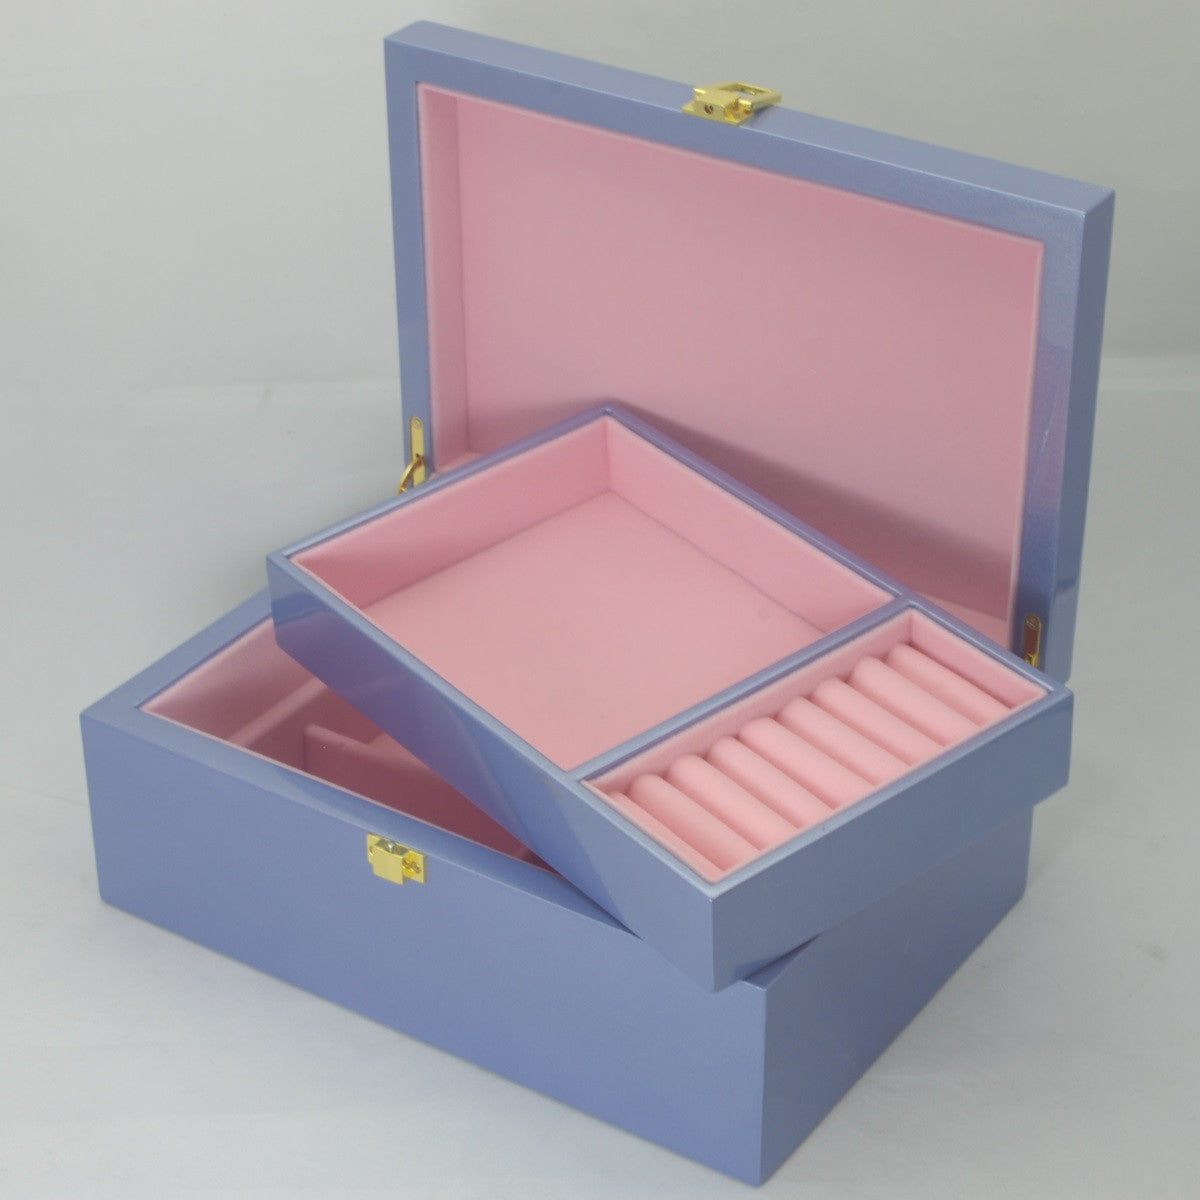 Kandi Jewellery Box Strawberry Pink Interior Metallic Blue Finish 25cm Open KJ03MBU